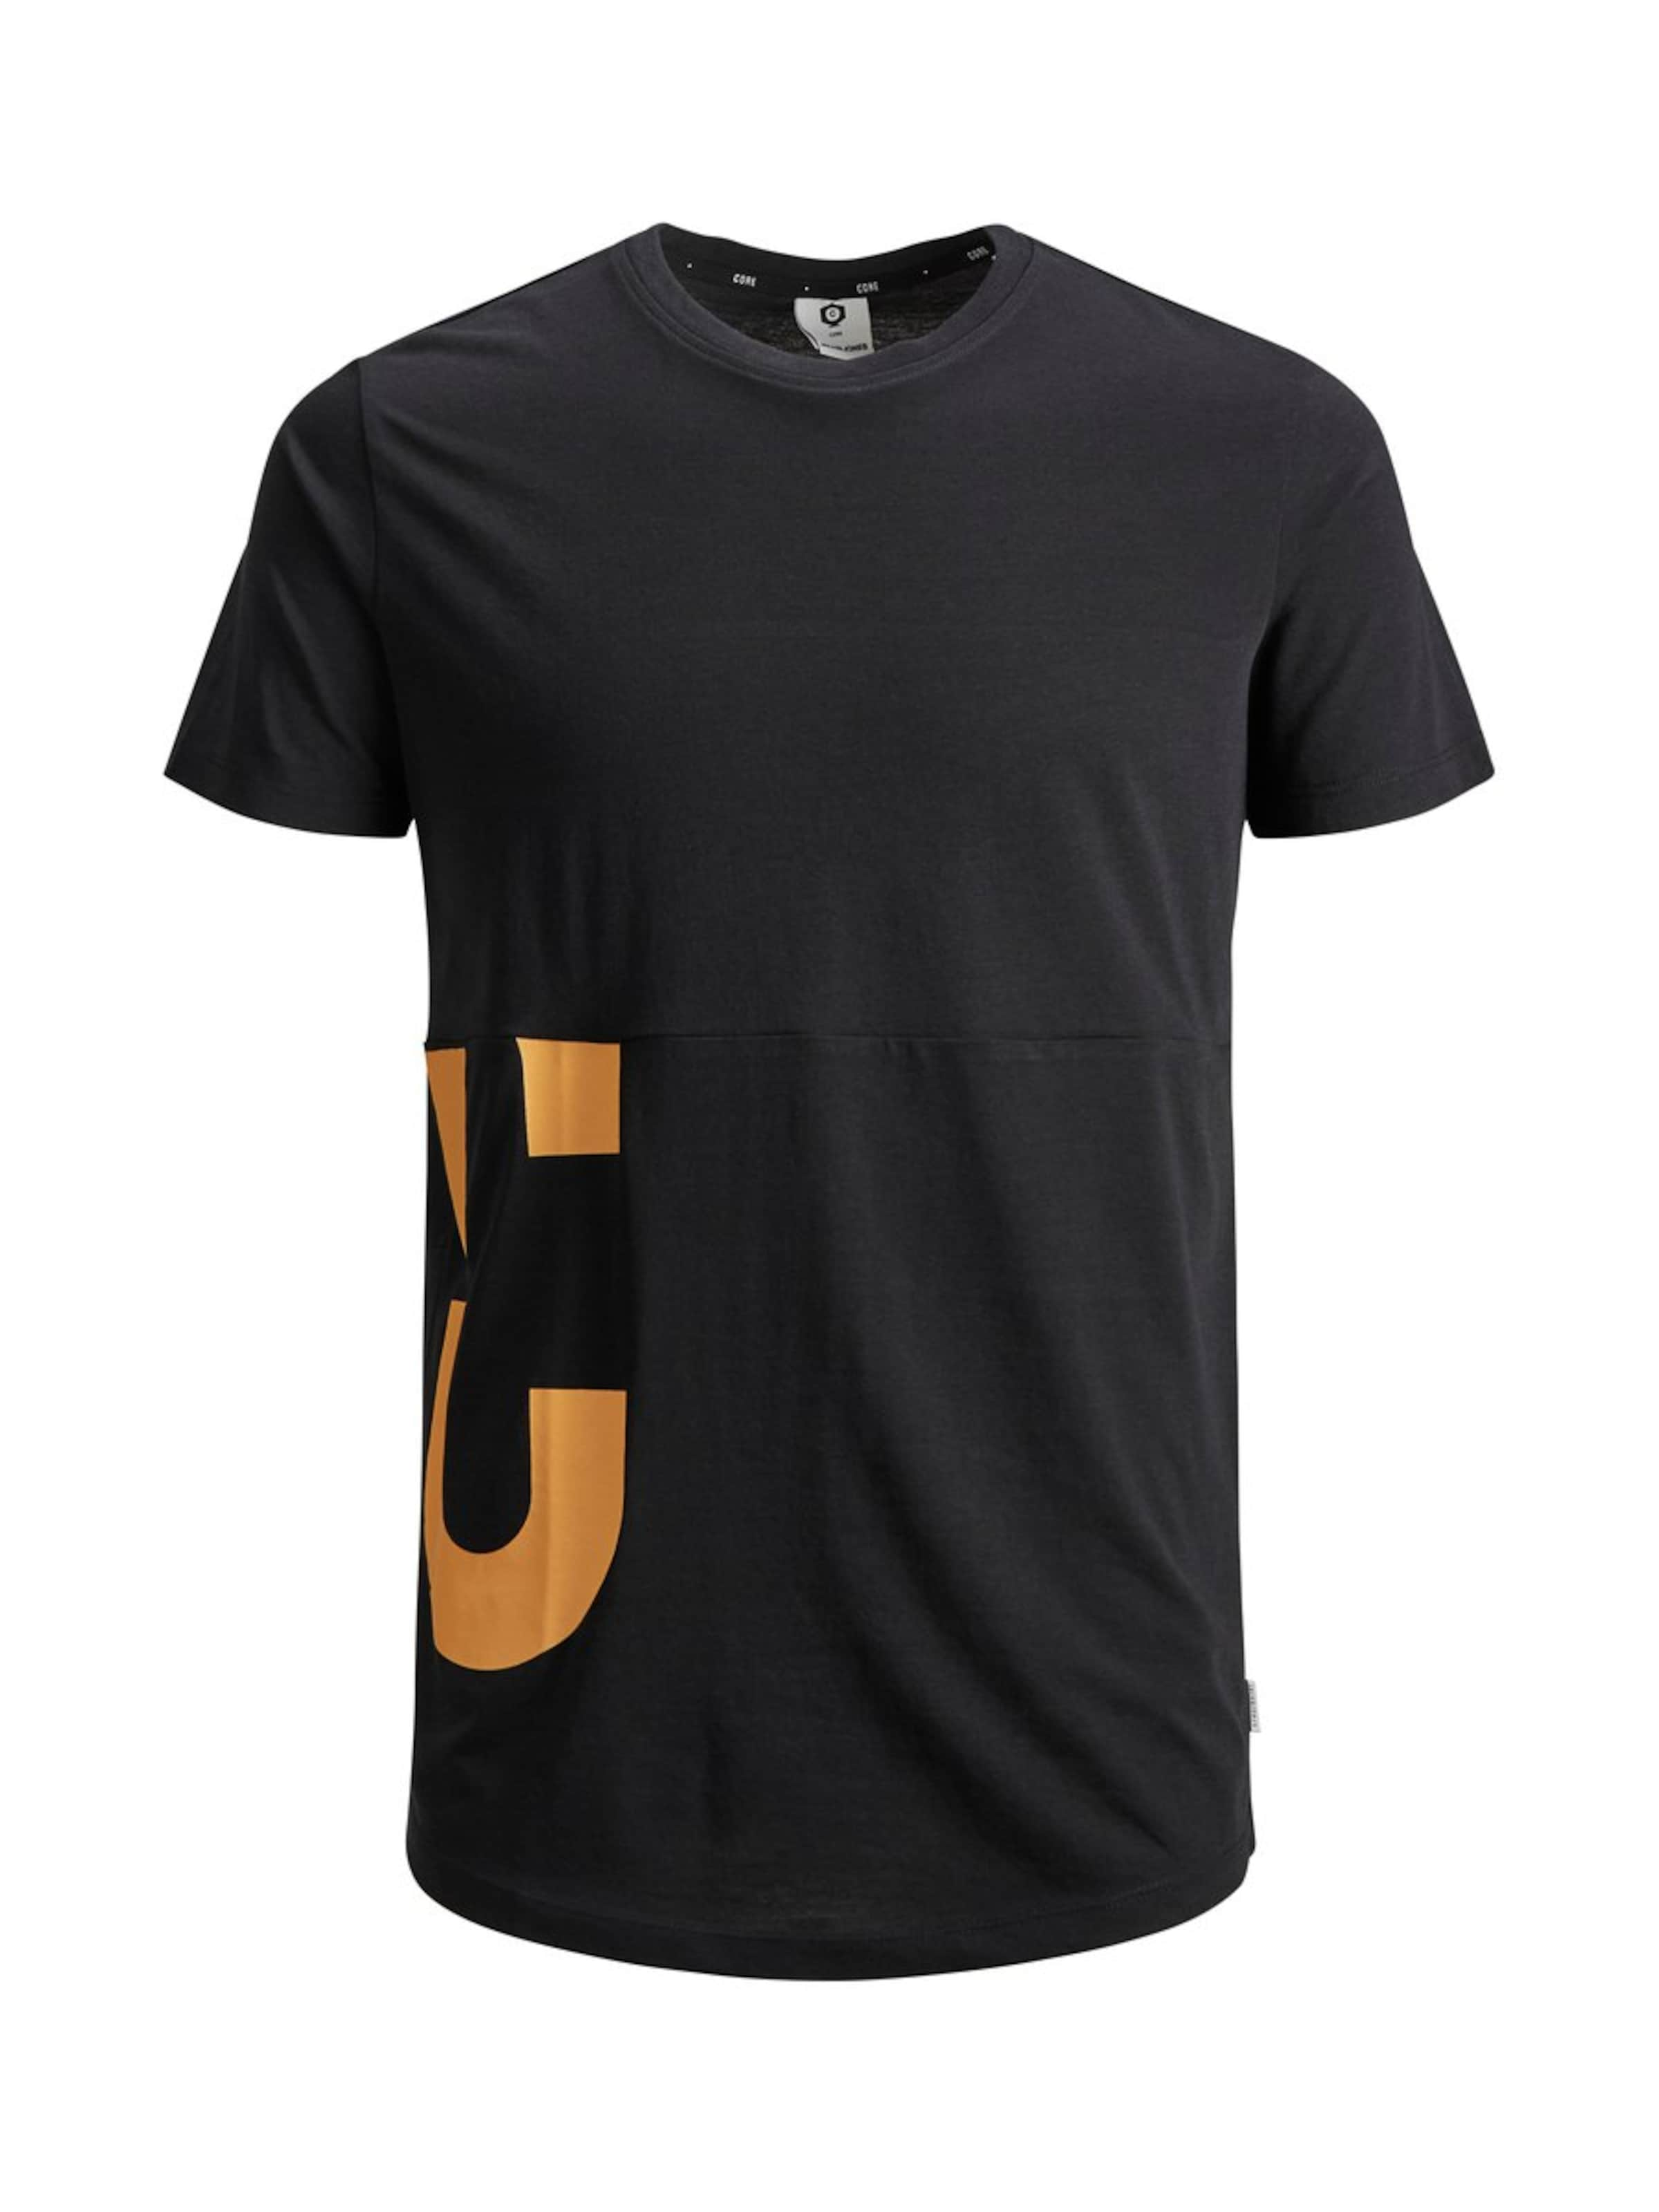 shirt En Jackamp; T Noir Chiné Jones qGUVpSzM